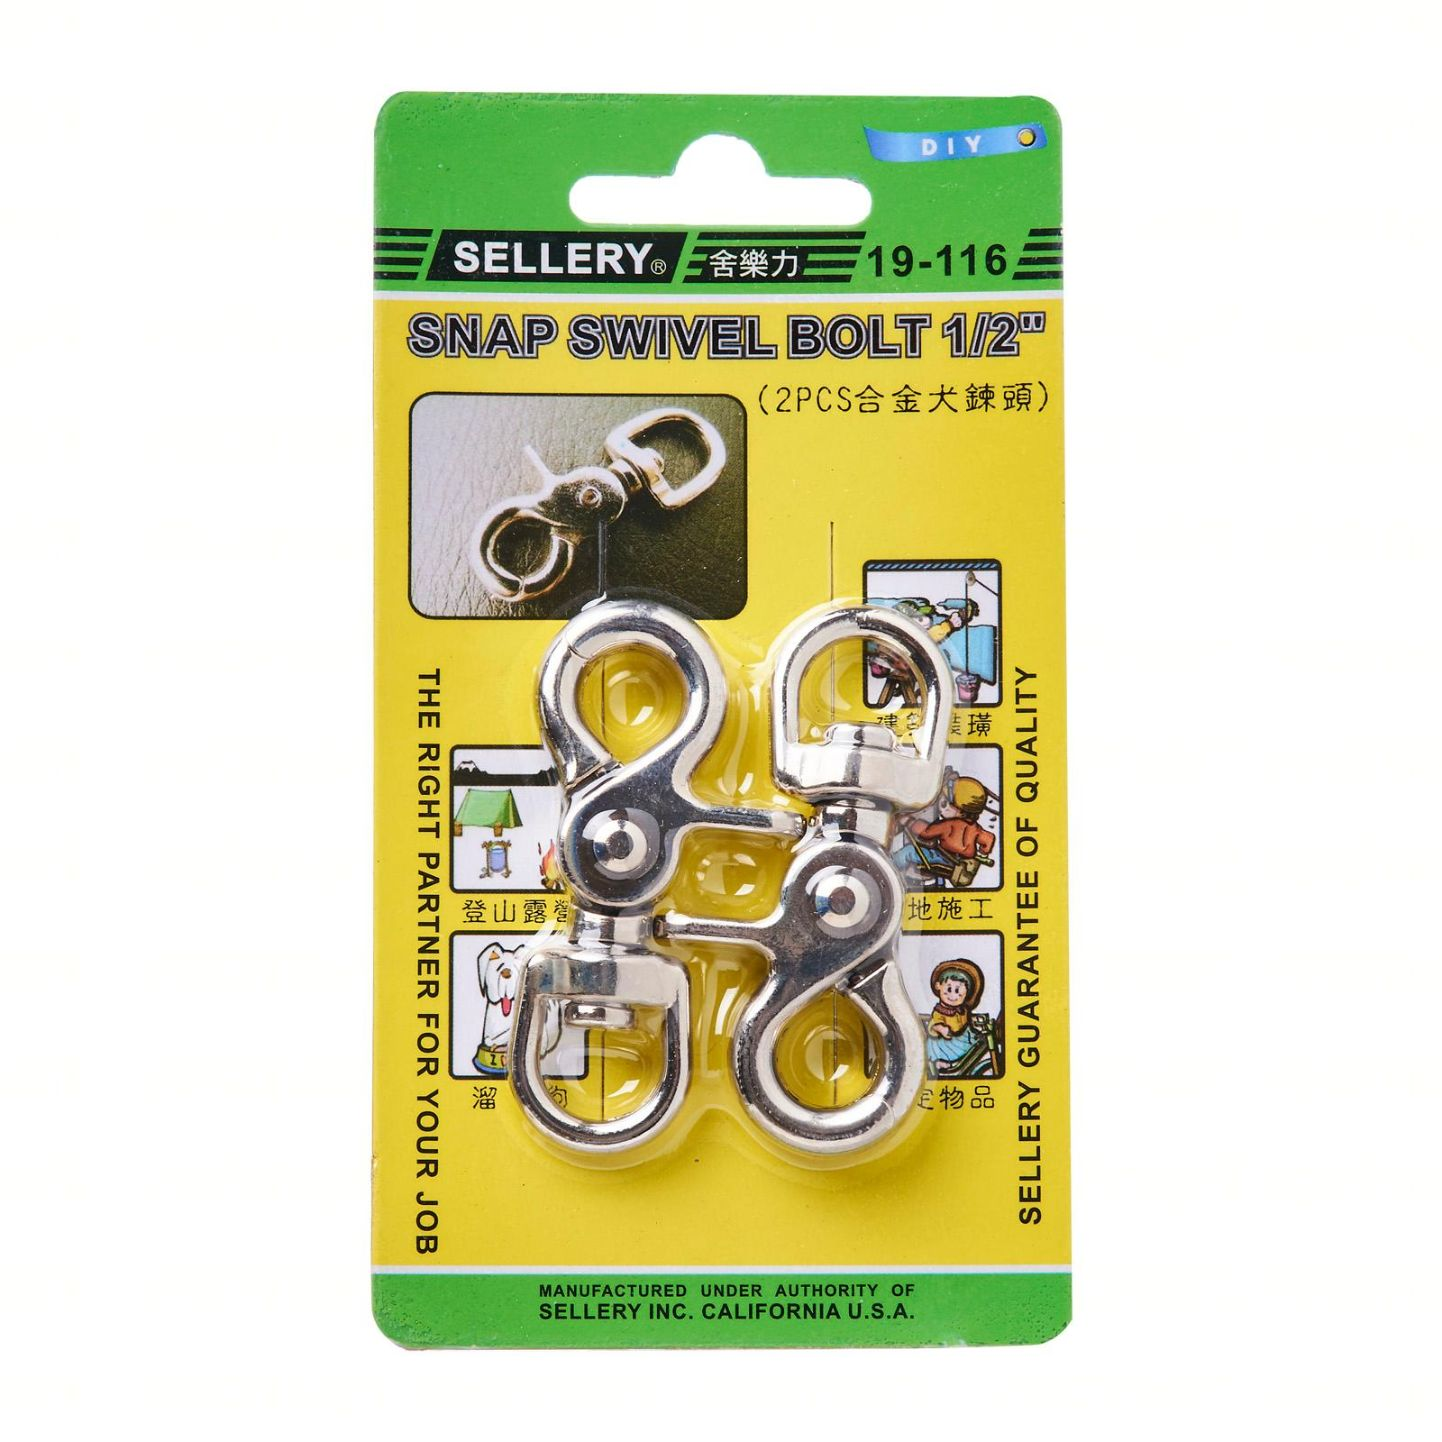 SELLERY 19-116 Snap Swivel Bolt 1/2""